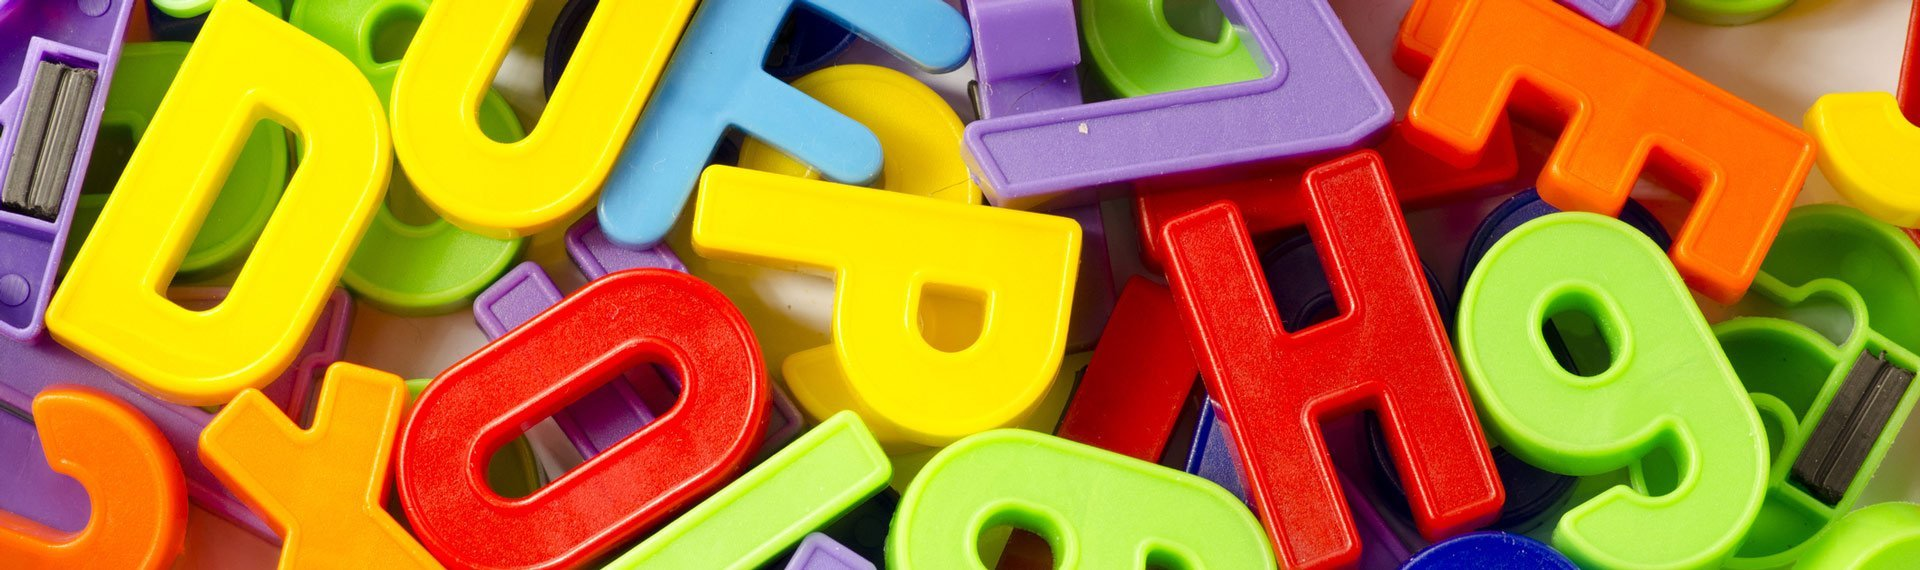 speech pathologists perth letters and numbers